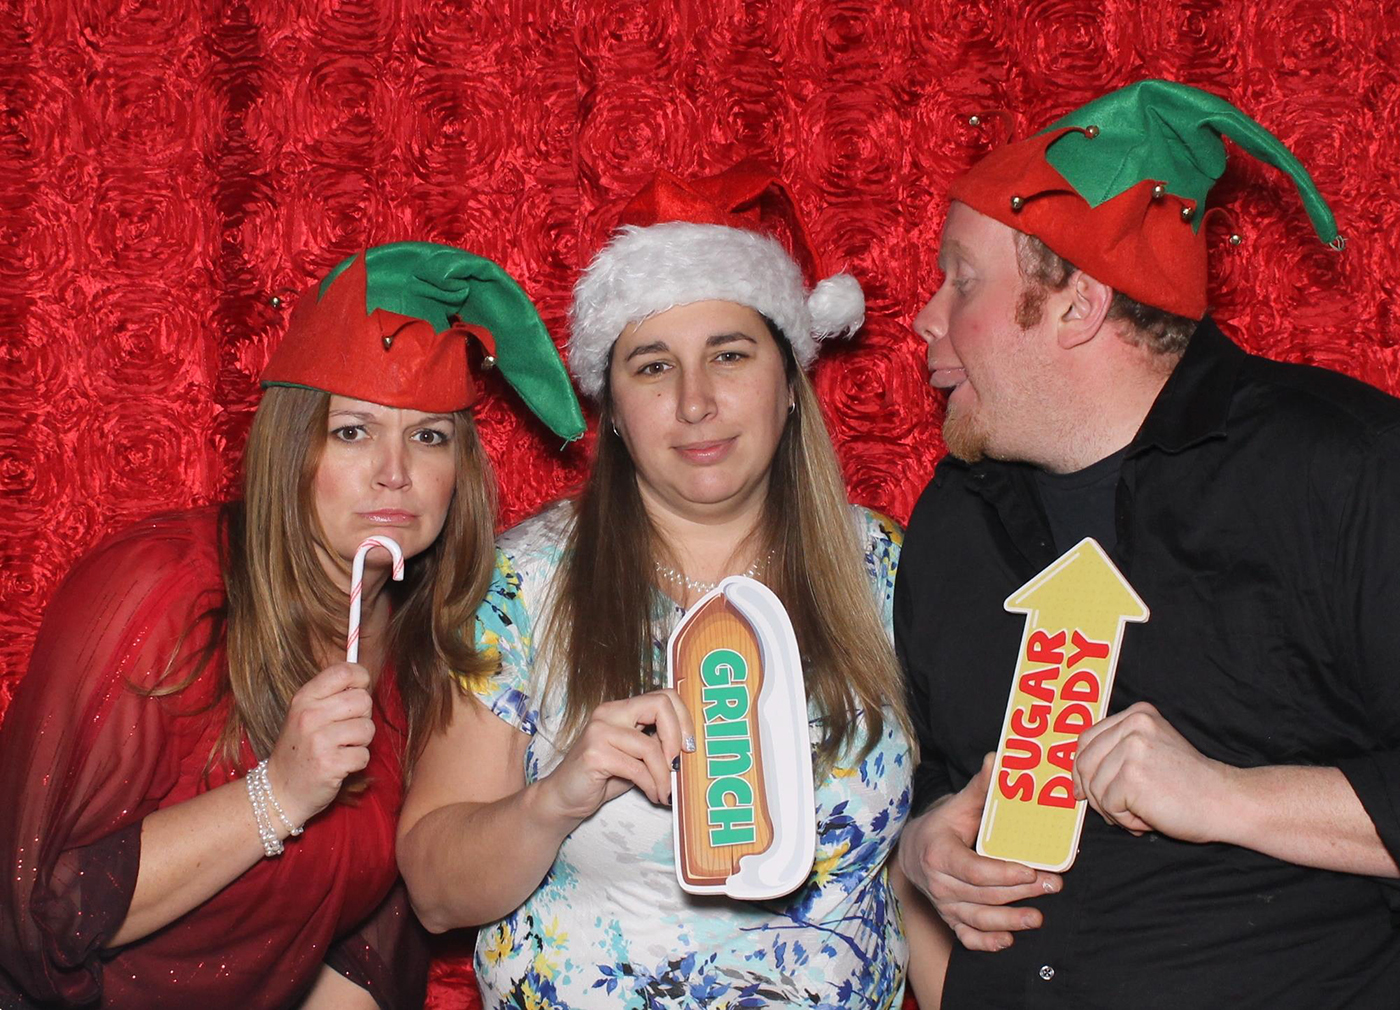 All Occasions Photography Albany NY - Wedding Photography Funny Photographers Dressed as Elves